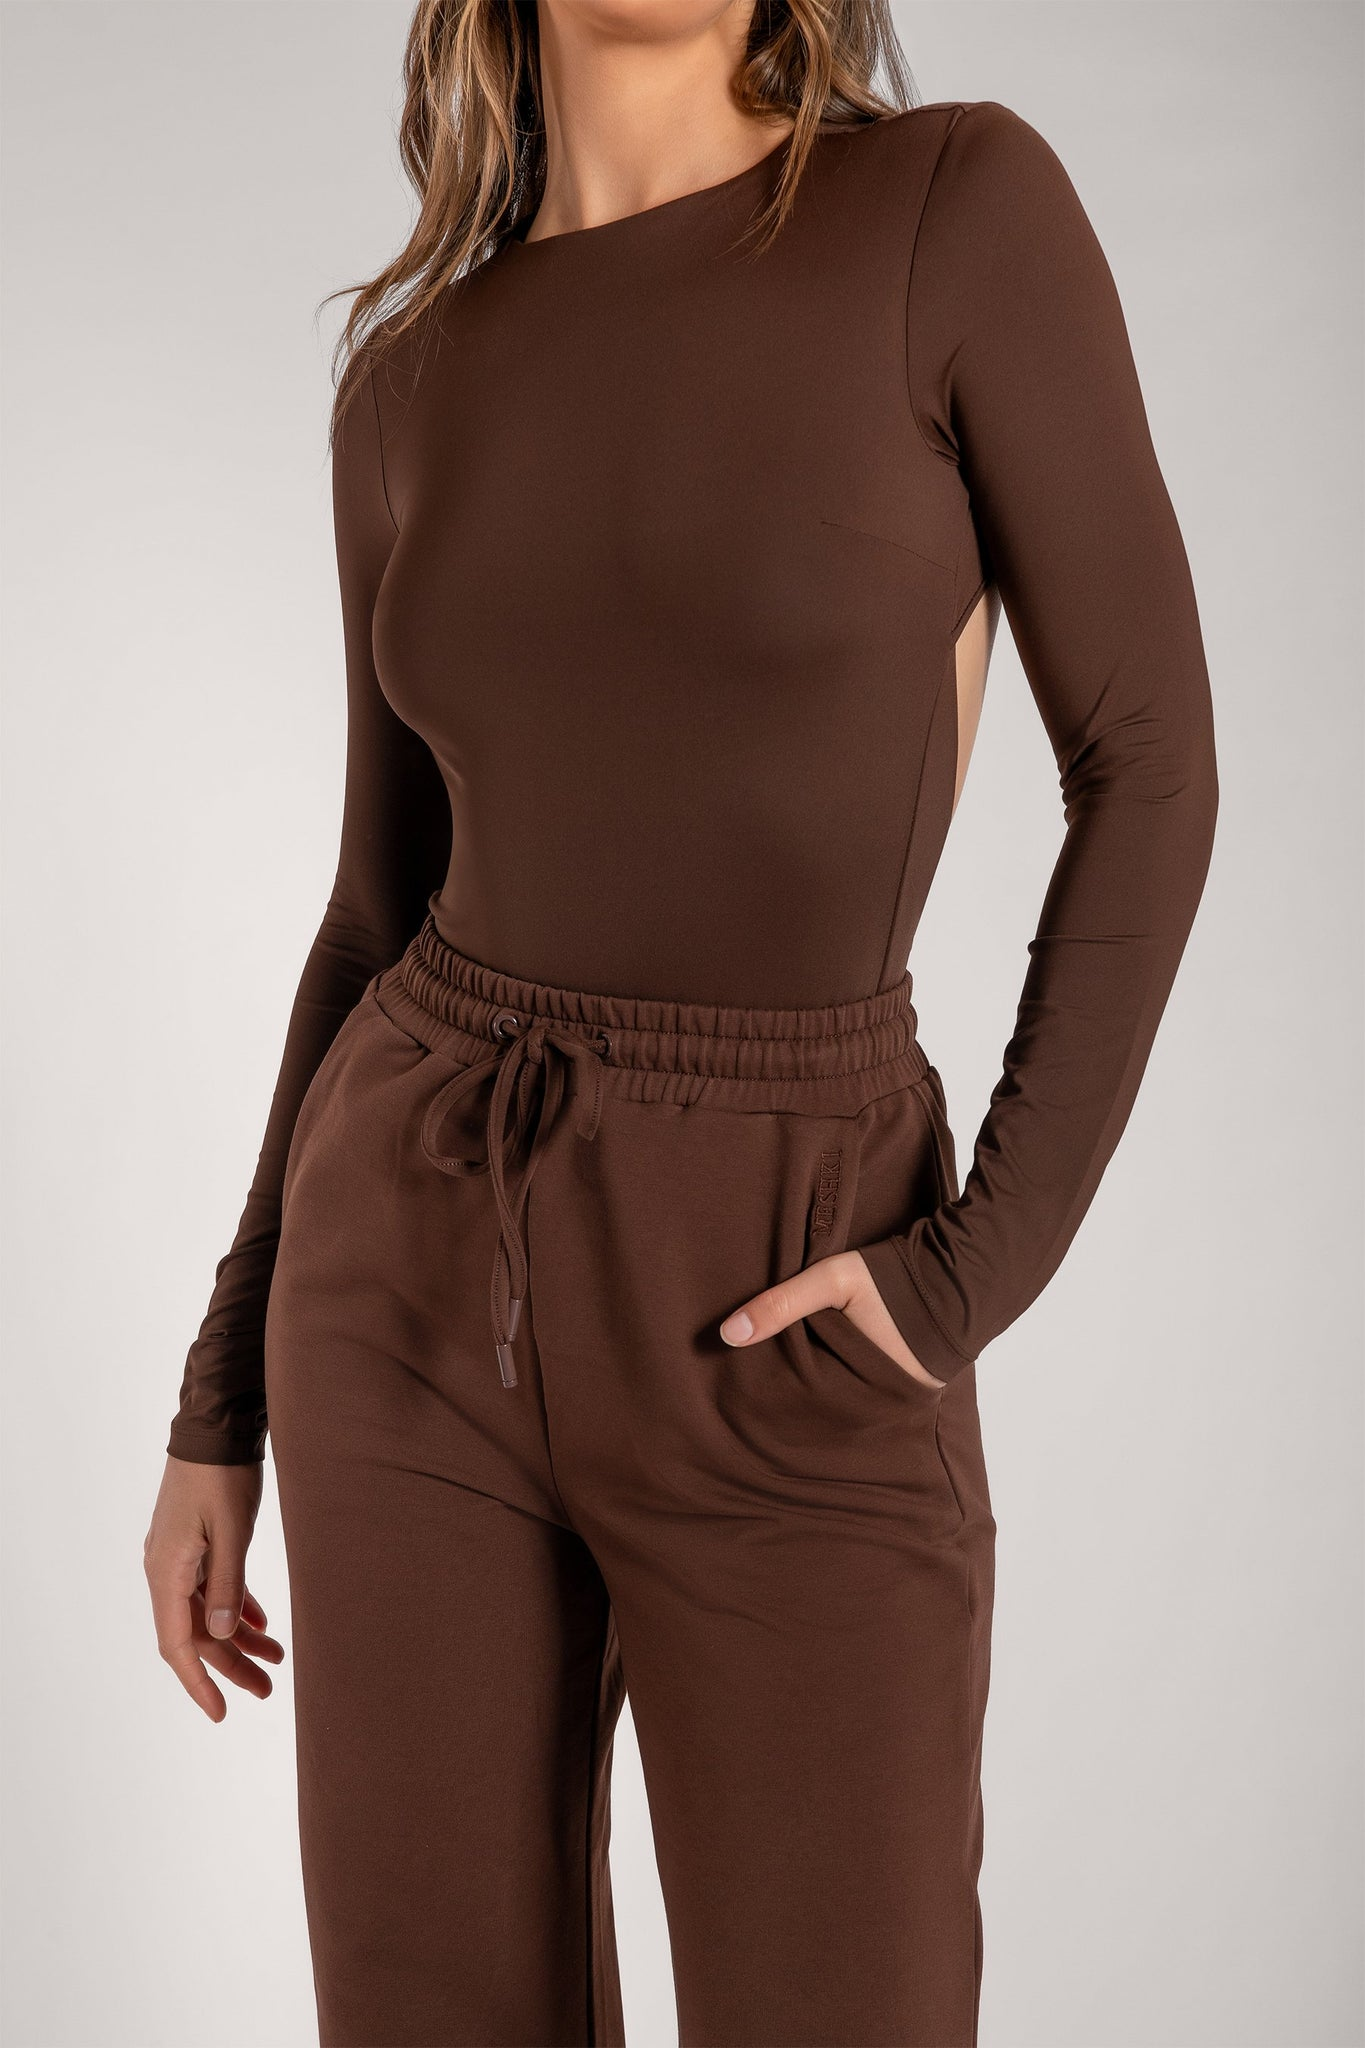 Rayne Cut Out Long Sleeve Bodysuit - Chocolate - MESHKI